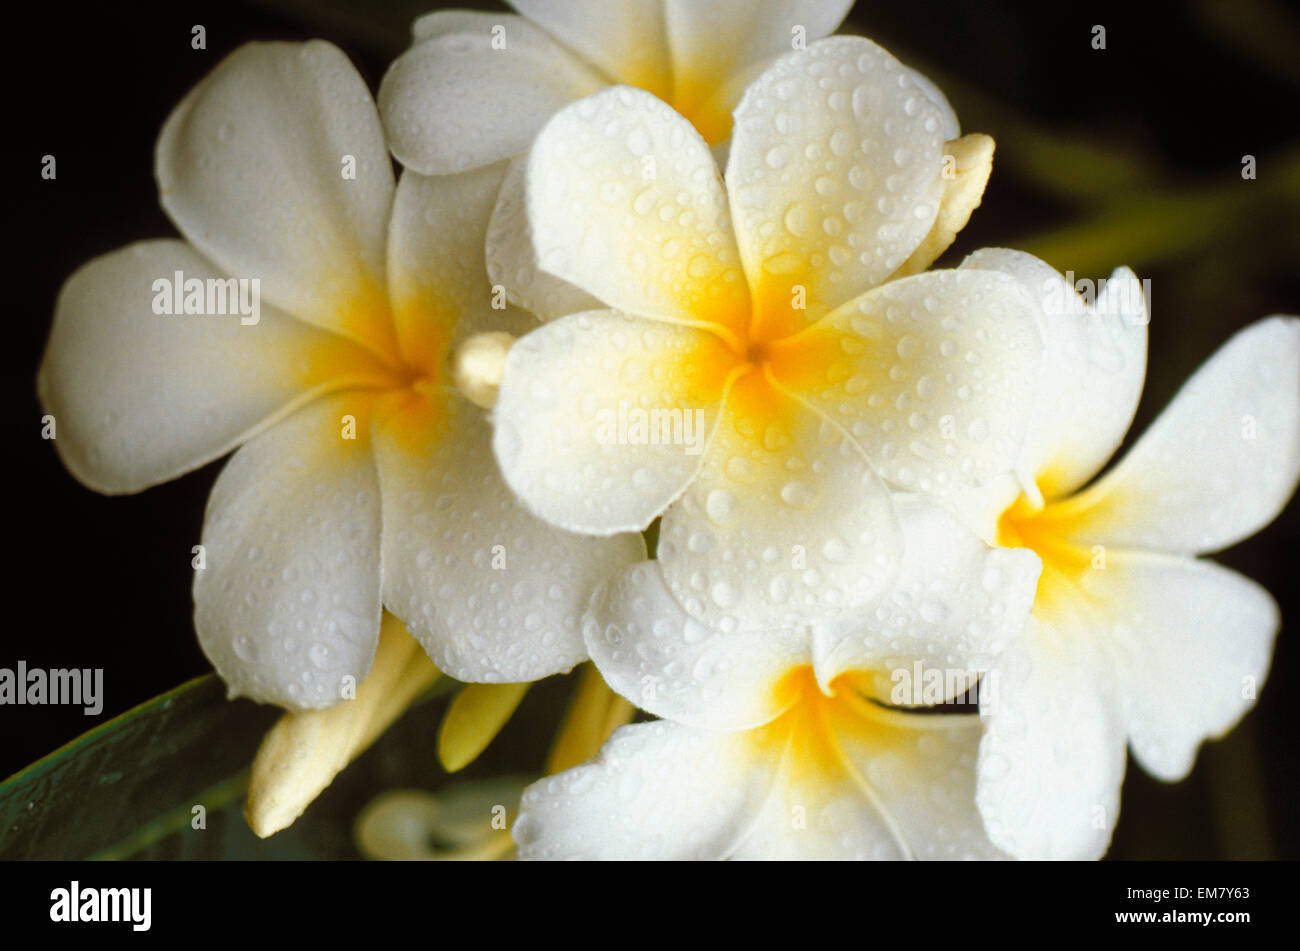 Hawaii plumeria flowers stock photo 81309595 alamy hawaii plumeria flowers izmirmasajfo